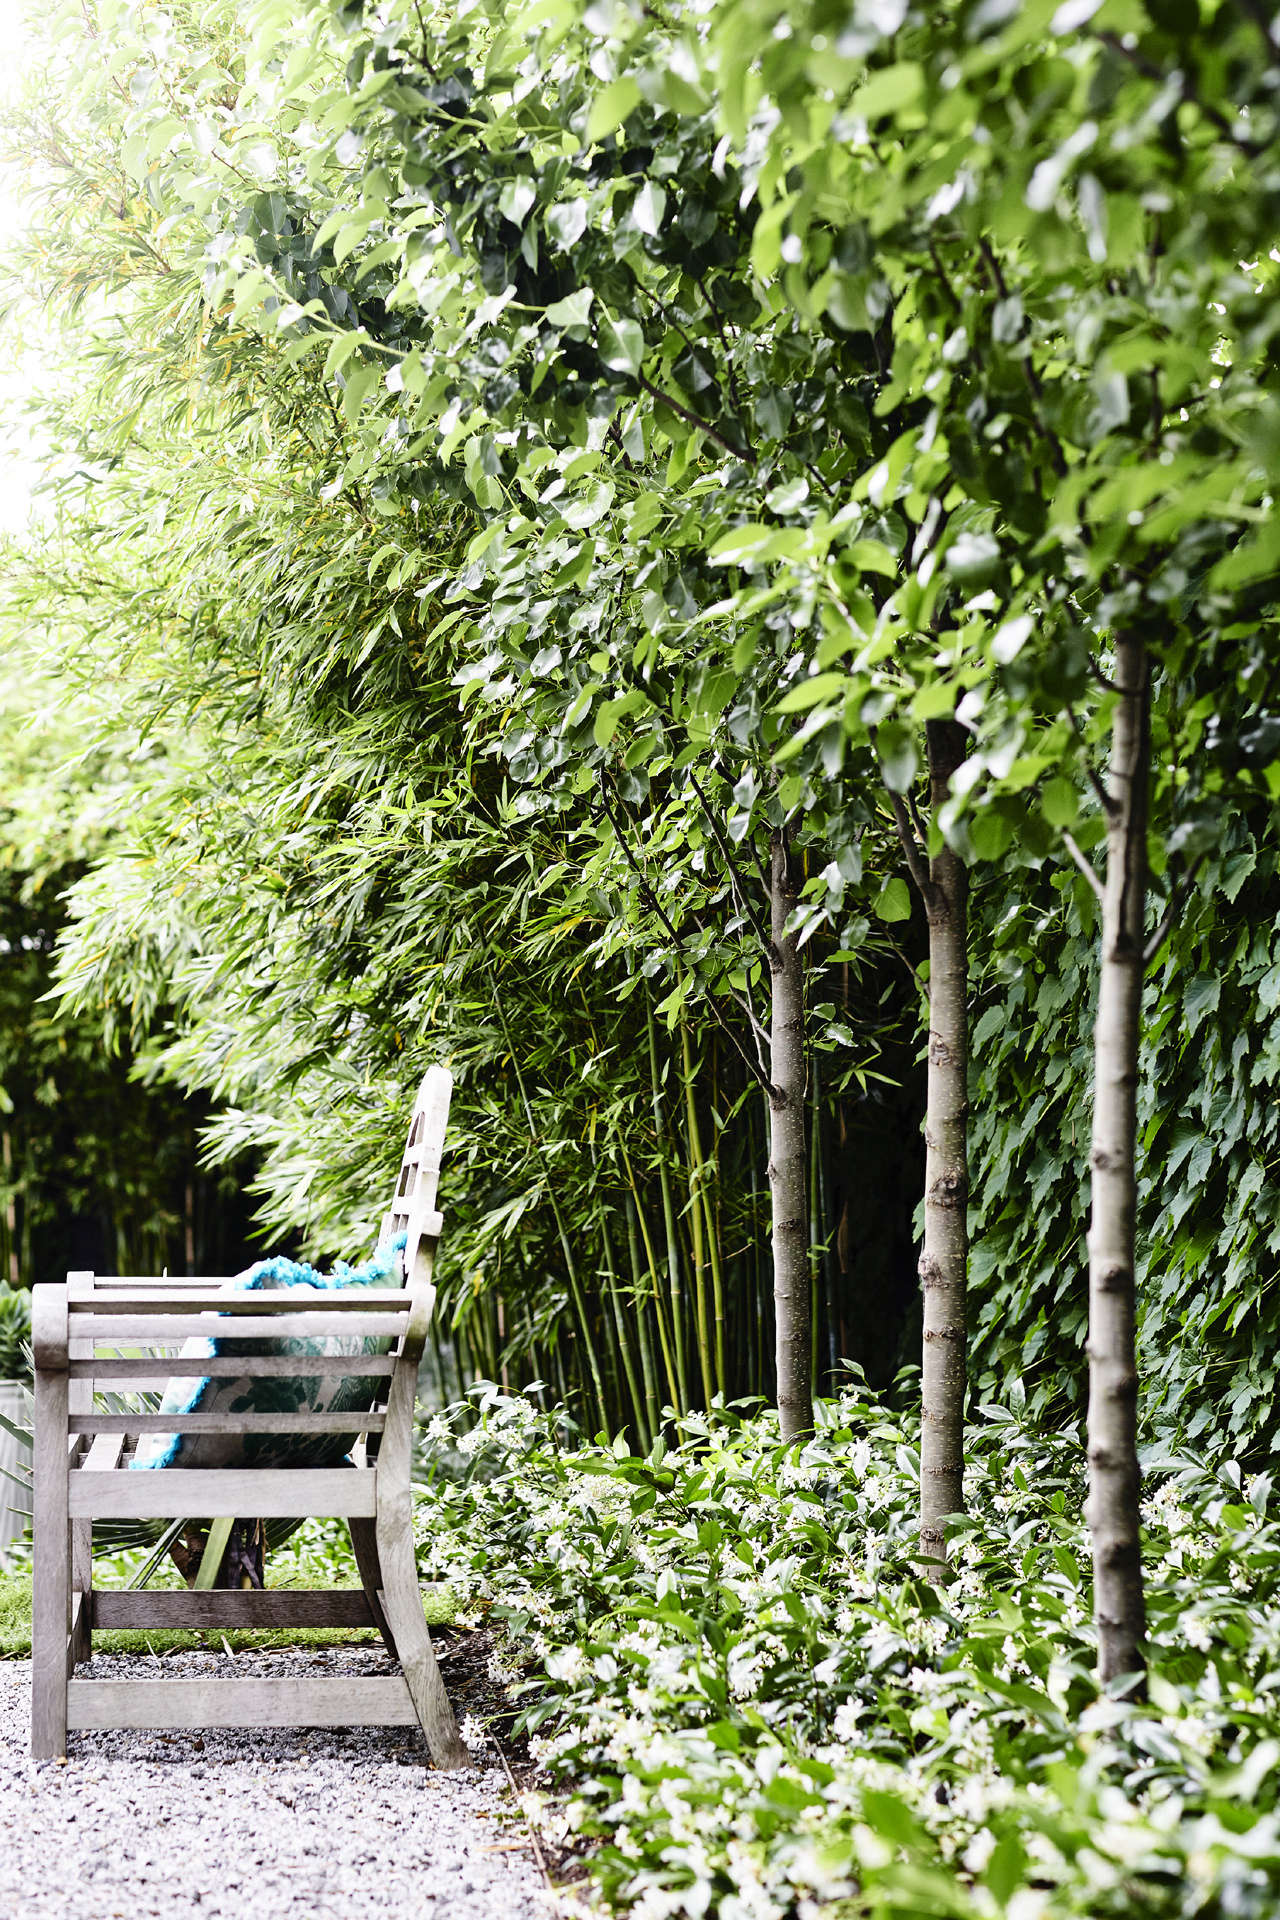 Boston ivy softens the fence, and a row of pleached flowering pears (Pyrus calleryana 'Chanticleer')creates another layer of foliage (and privacy).